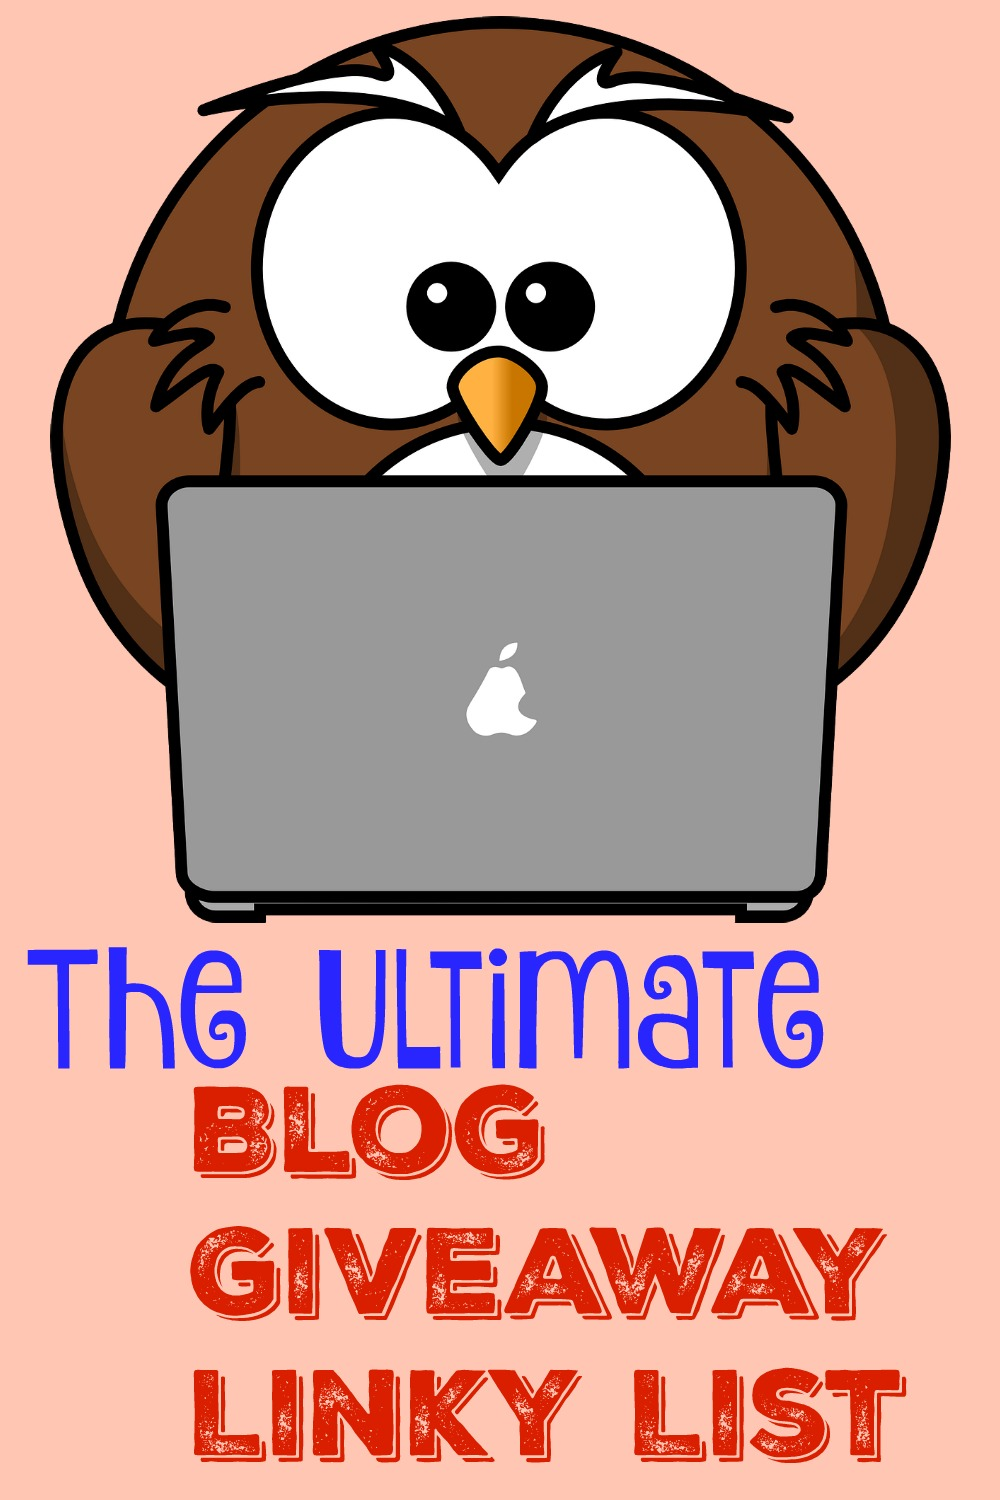 giveaway blogs books bargains blessings blog giveaway linky list 8050